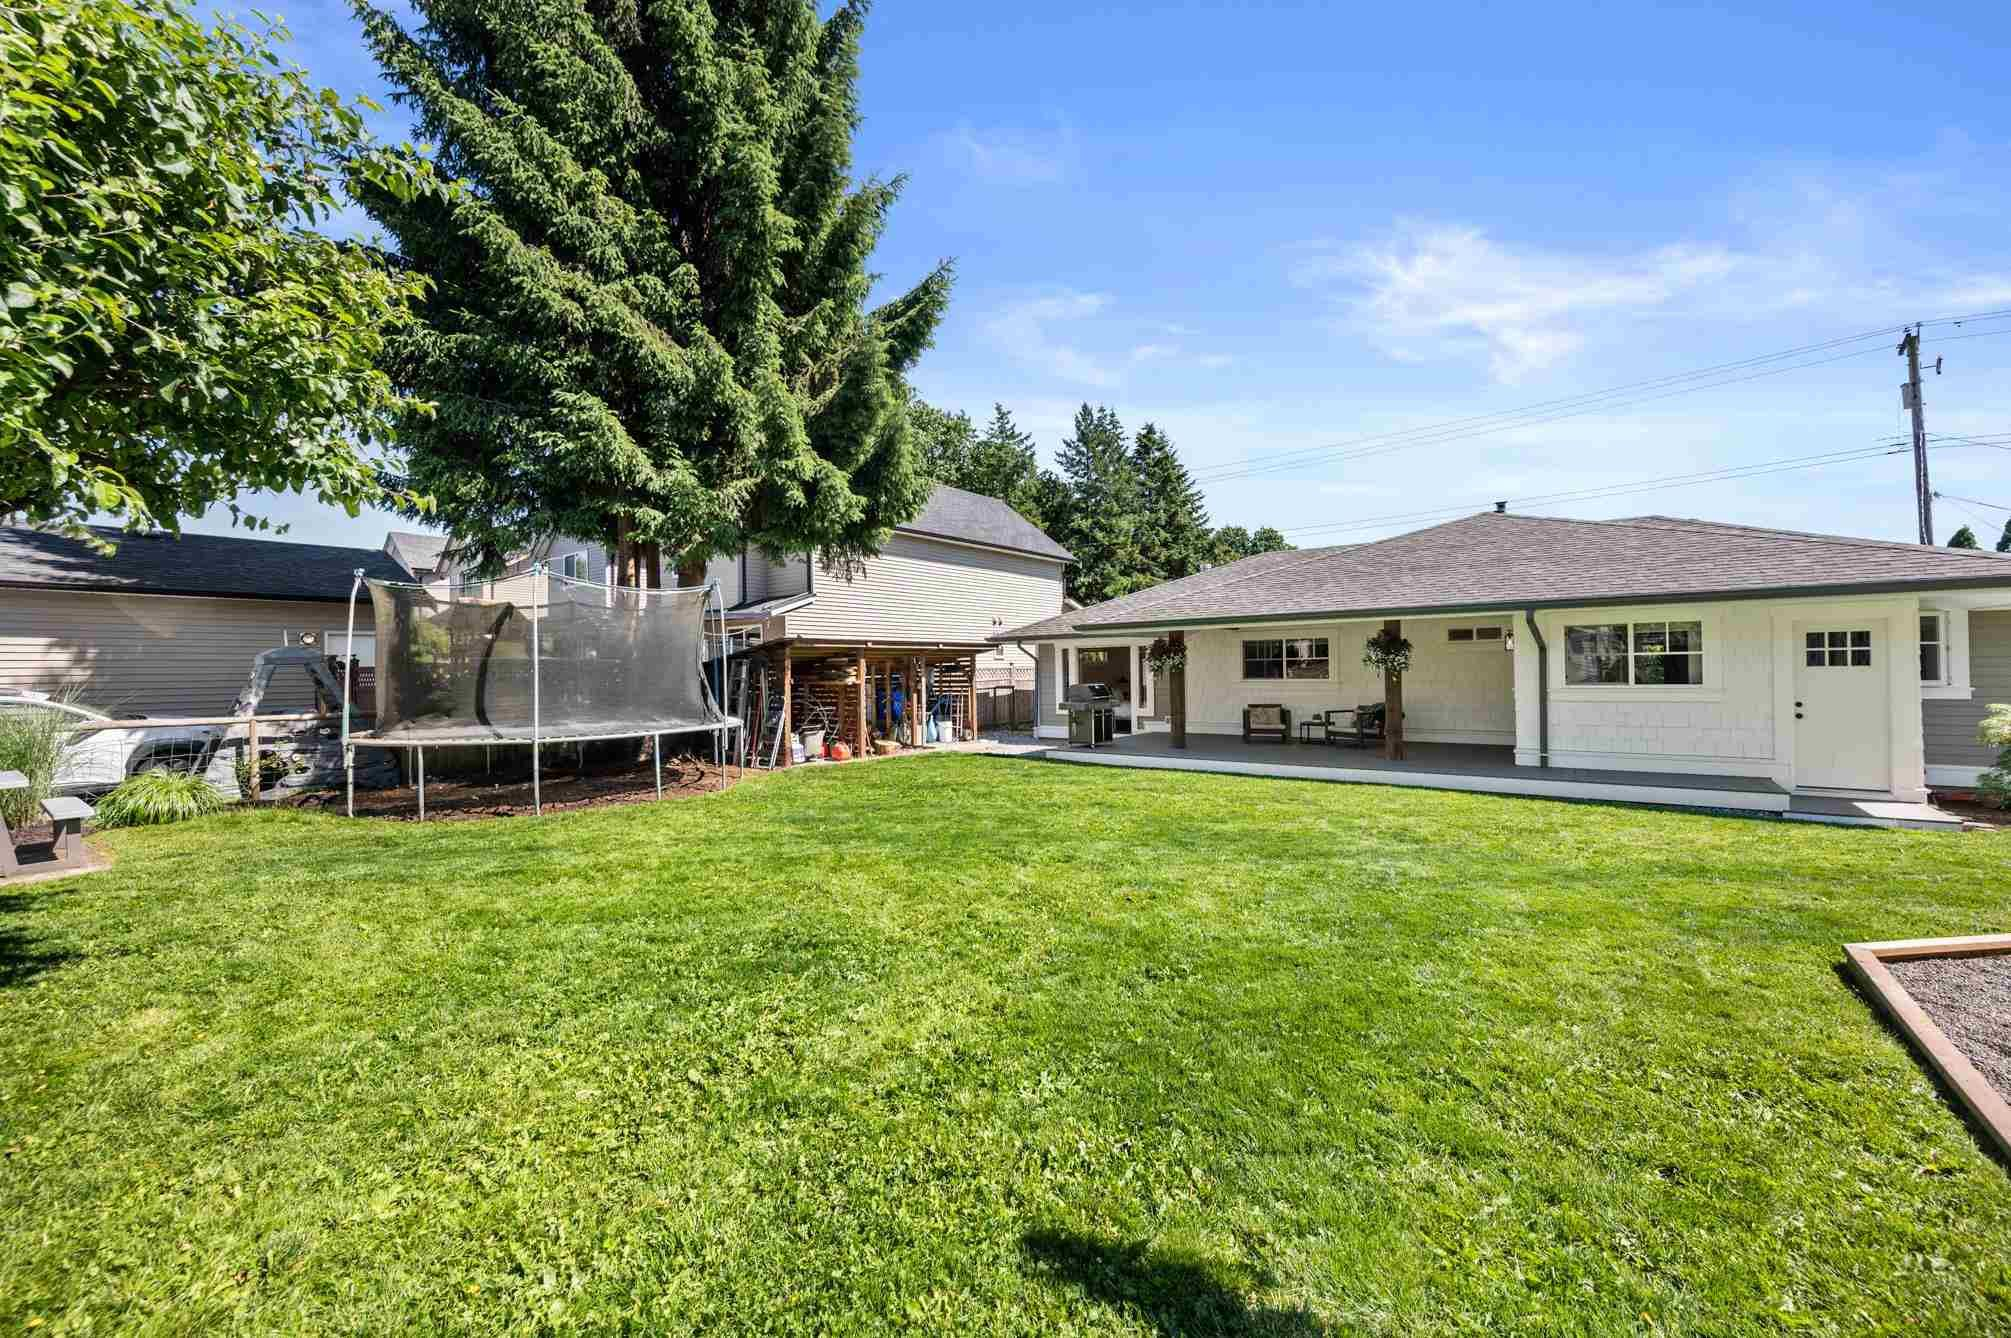 Photo 38: Photos: 32459 7TH Avenue in Mission: Mission BC House for sale : MLS®# R2595099